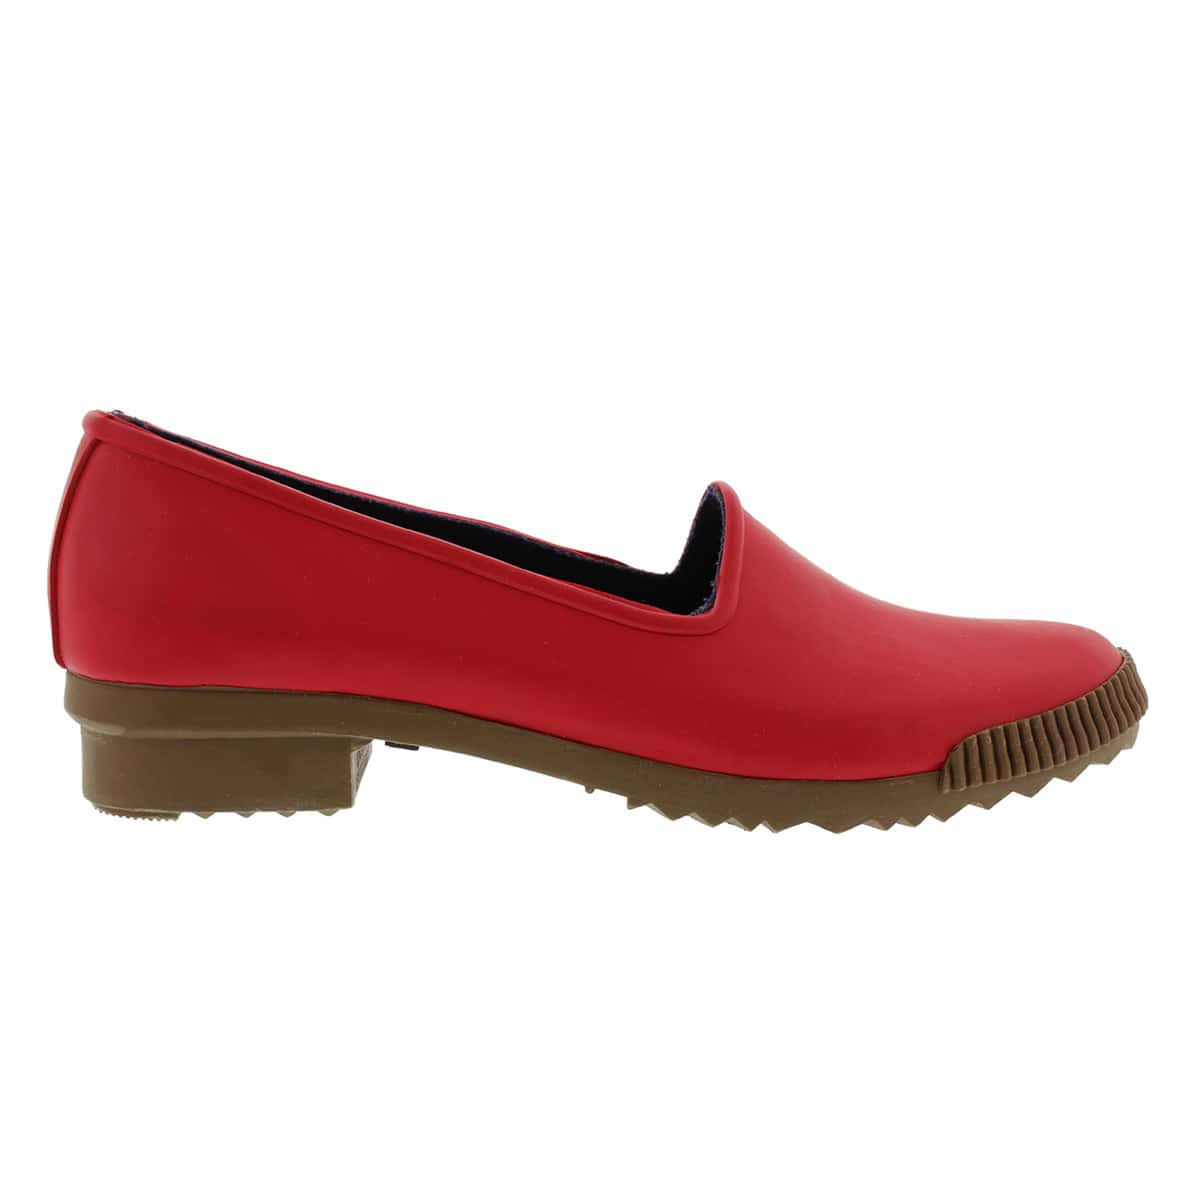 ruby cougar women Take a peek at the ruby rain shoe free shipping on your favorite cougar shoes, boots, sandals, and more.